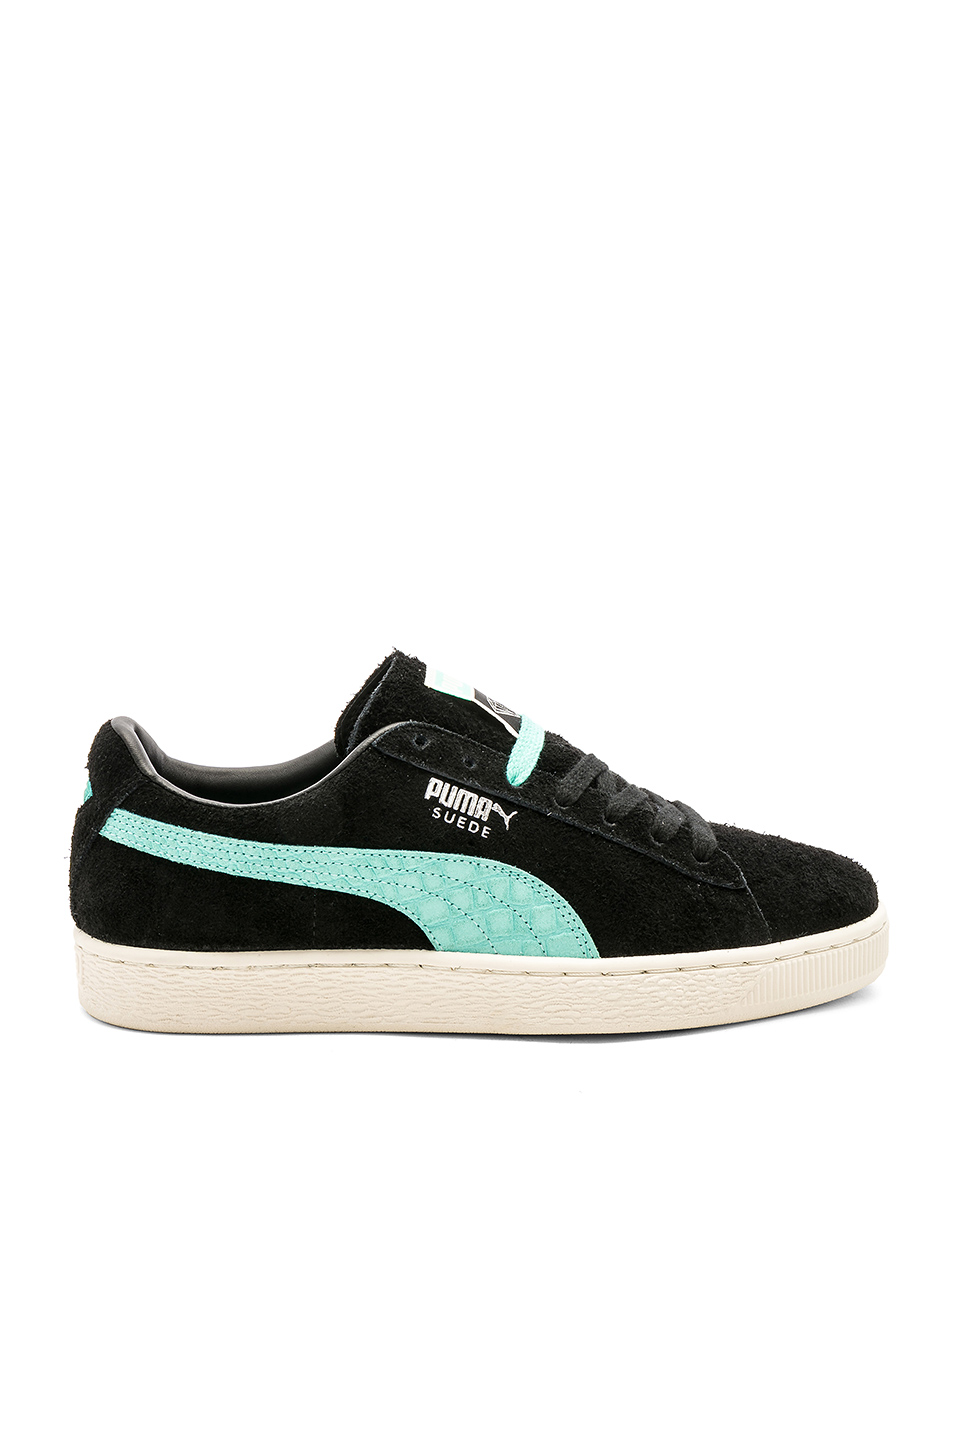 d1dd72833f x Diamond Supply Co Suede, Puma Select